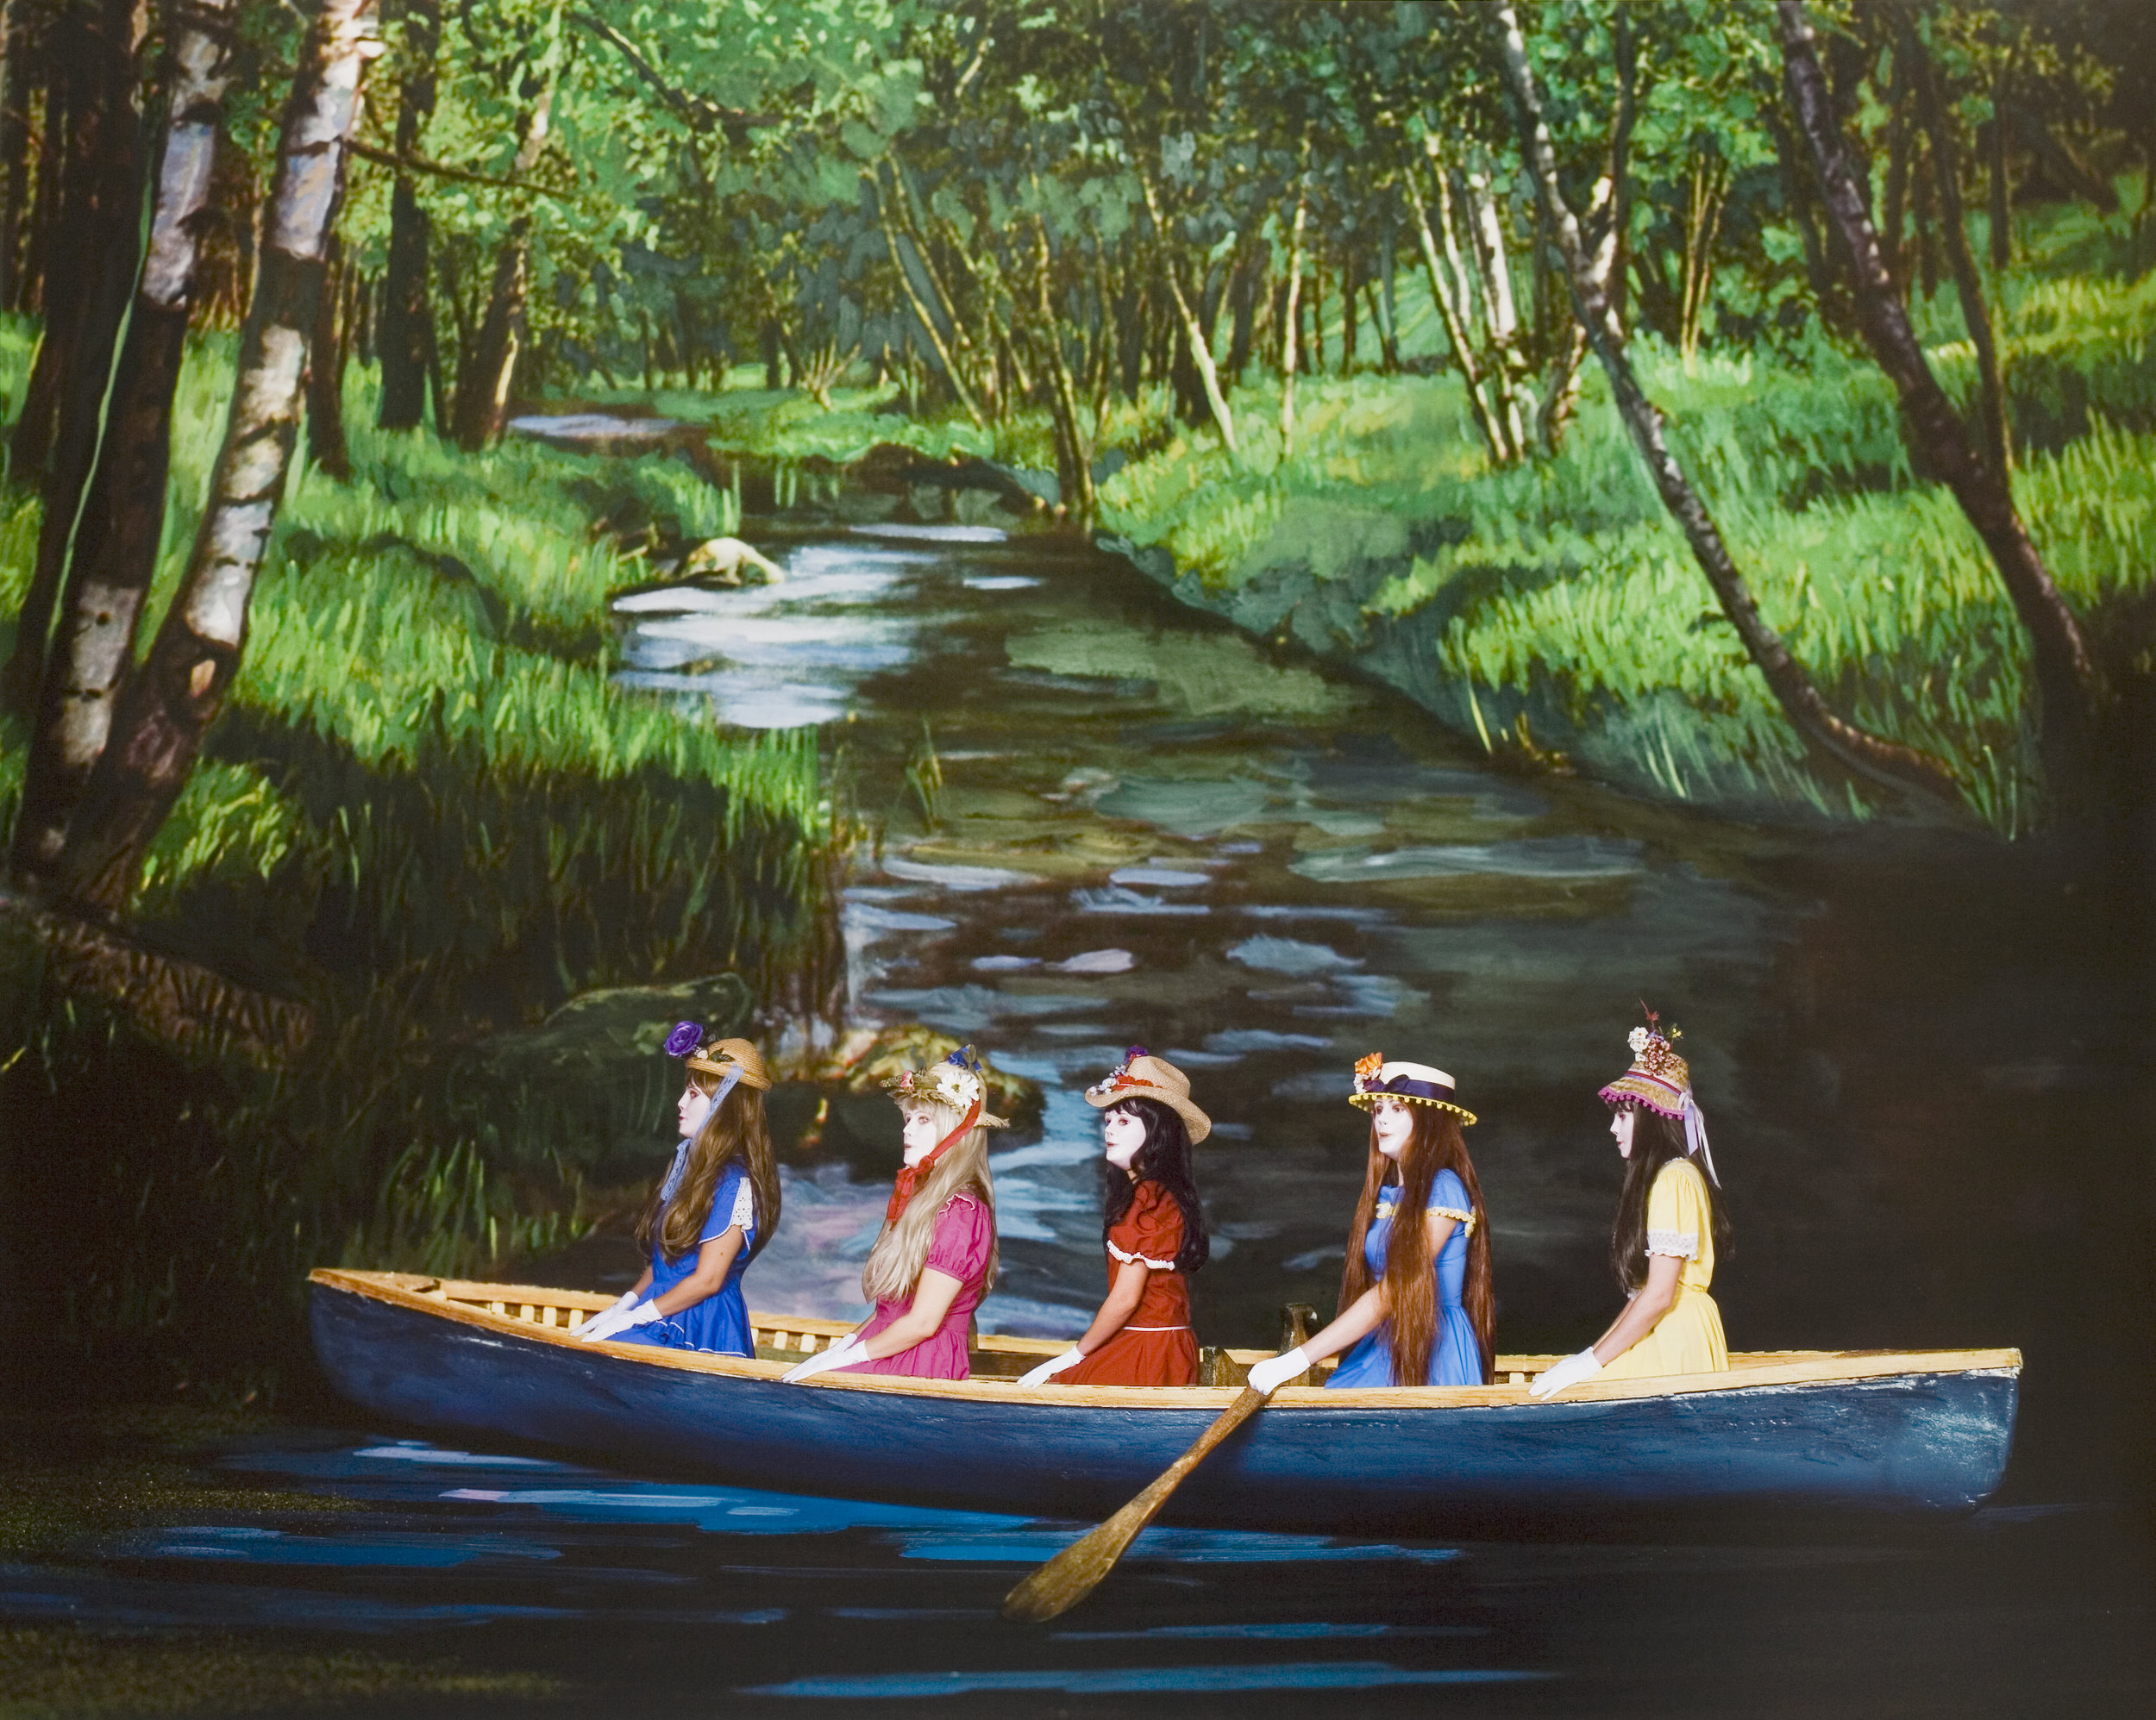 Voyage in The Canoe, 2008 collages on archival pigment print mounted on Sintra 104 x 129 cm - 40 15/16 x 50 13/16 inches (framed)